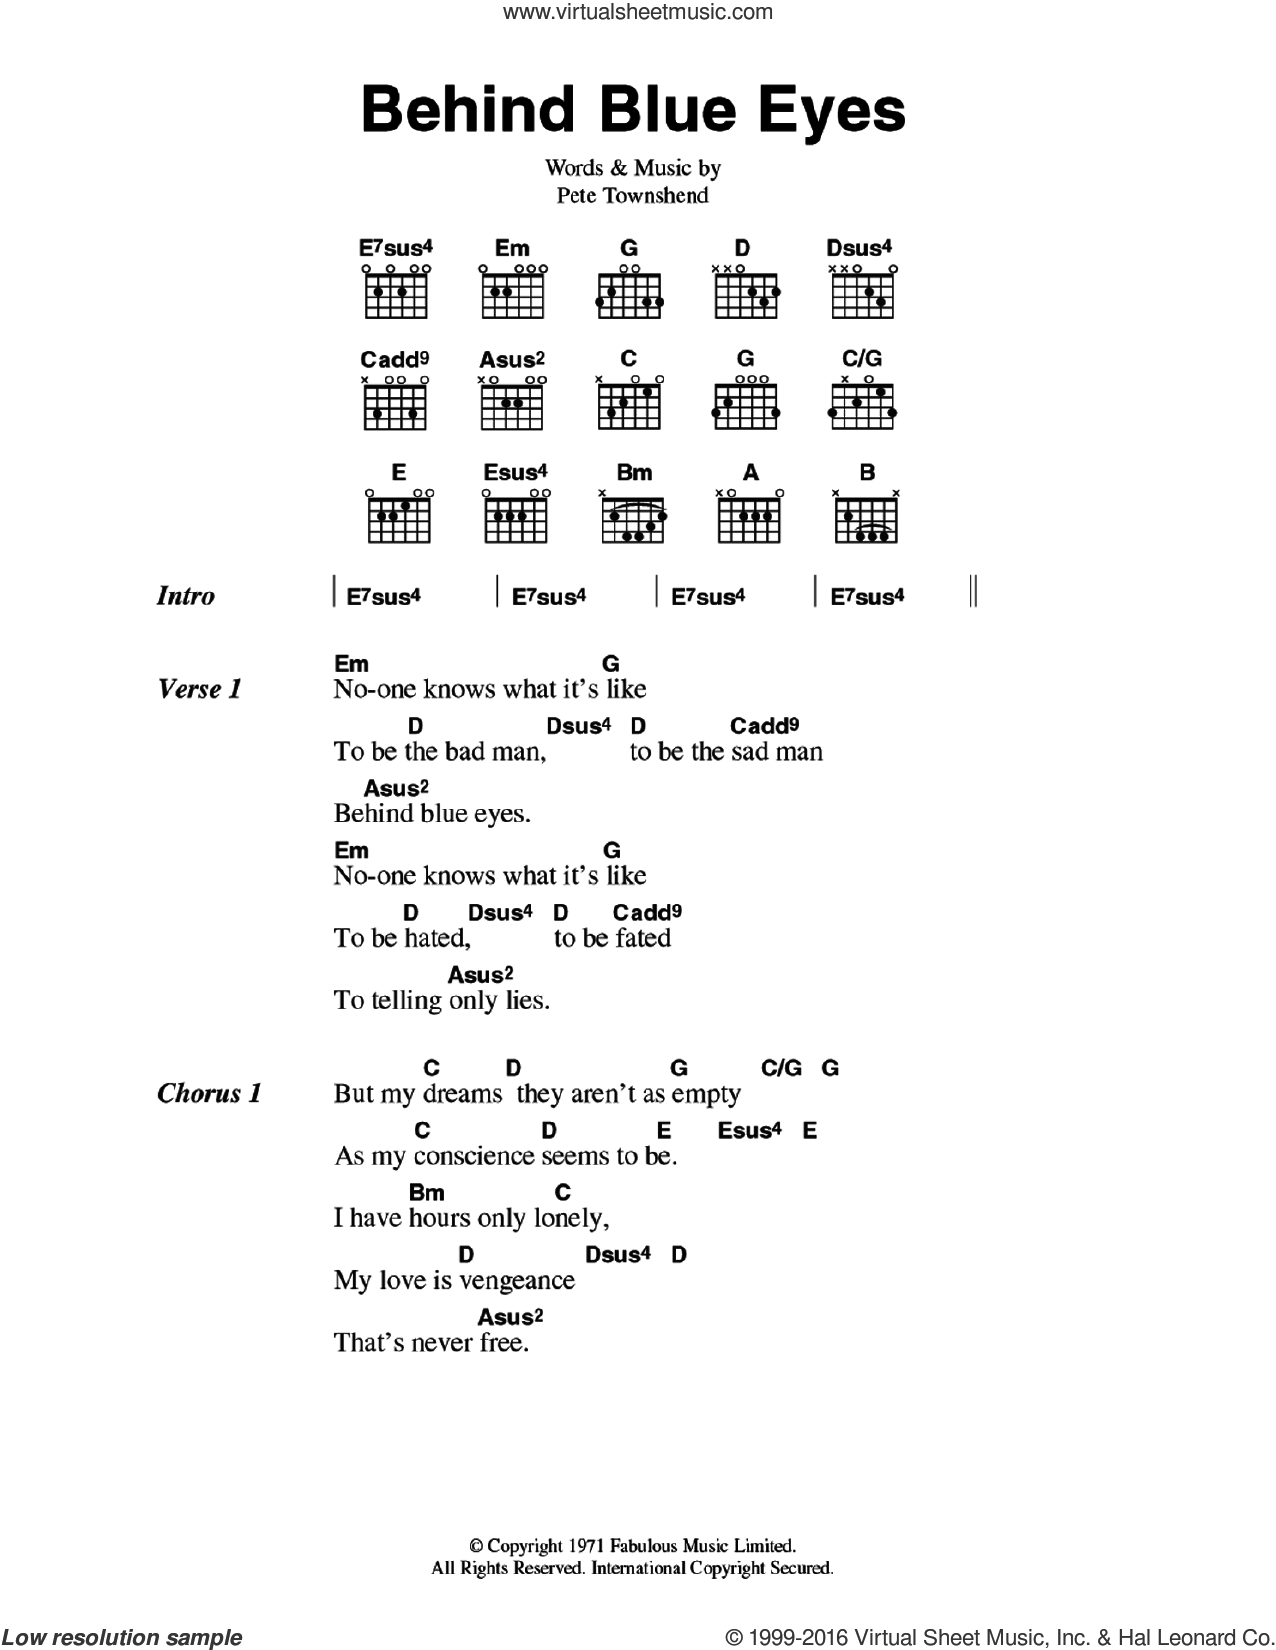 Behind Blue Eyes sheet music for guitar (chords) by Pete Townshend